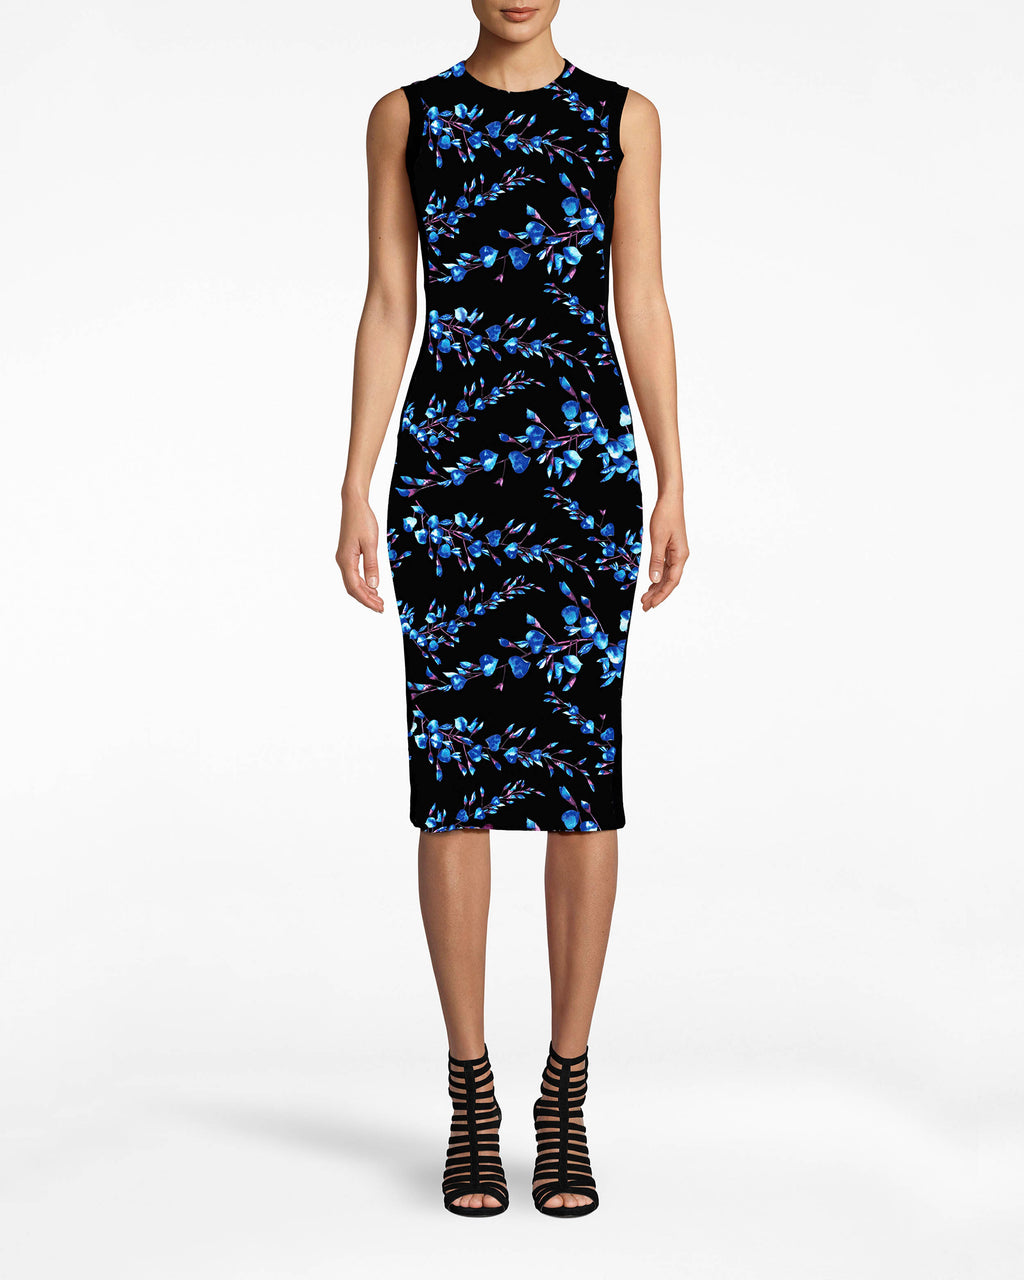 CC10202 - BLOSSOM COTTON METAL SHEATH DRESS - dresses - midi - How do you step-up staples? Here's a way: this flowery Cotton Metal dress has unexpected jersey banding and a sexy fit.